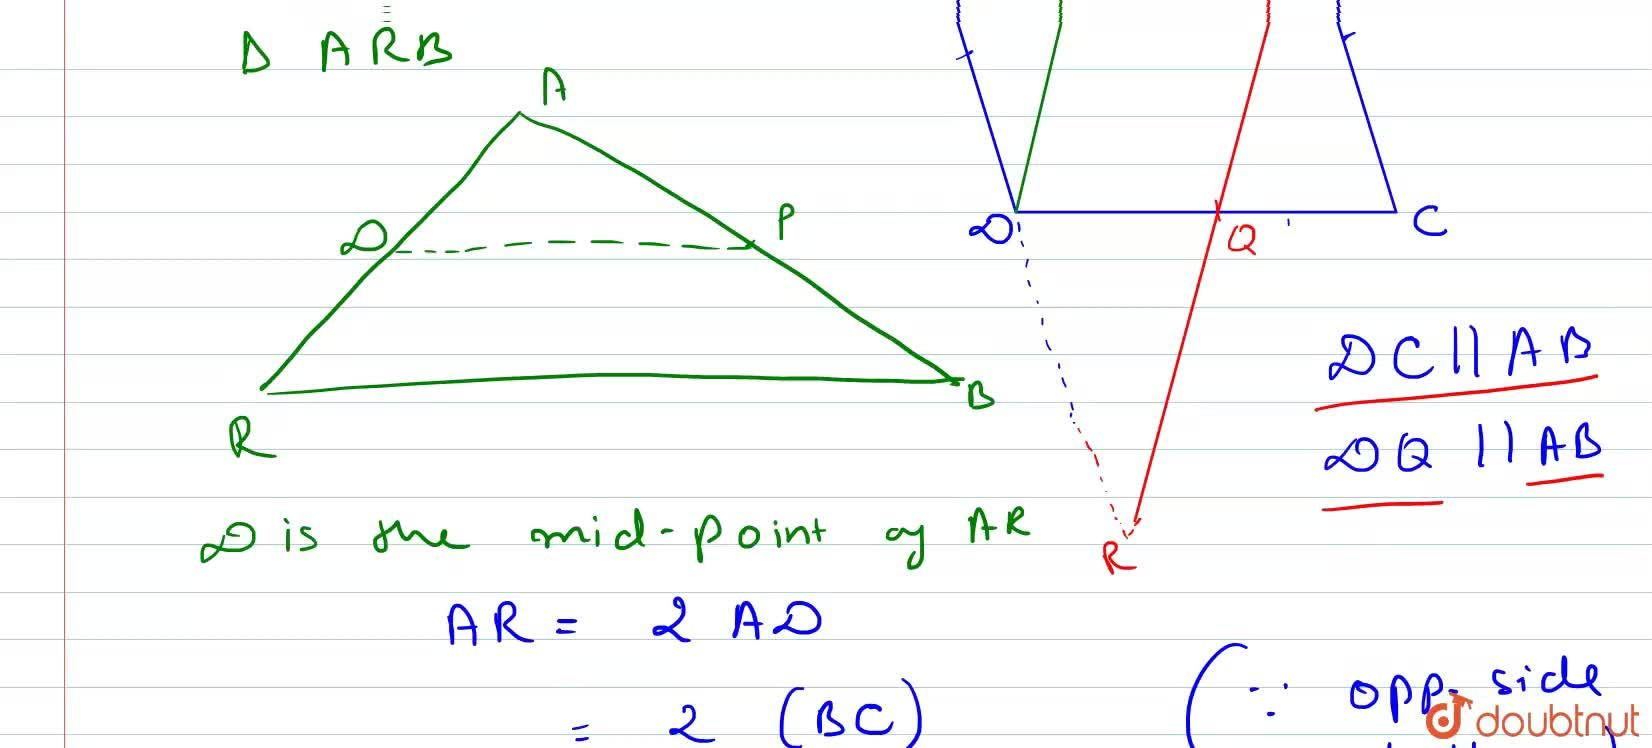 Solution for P is the mid-point of side AB of parallelogram ABC